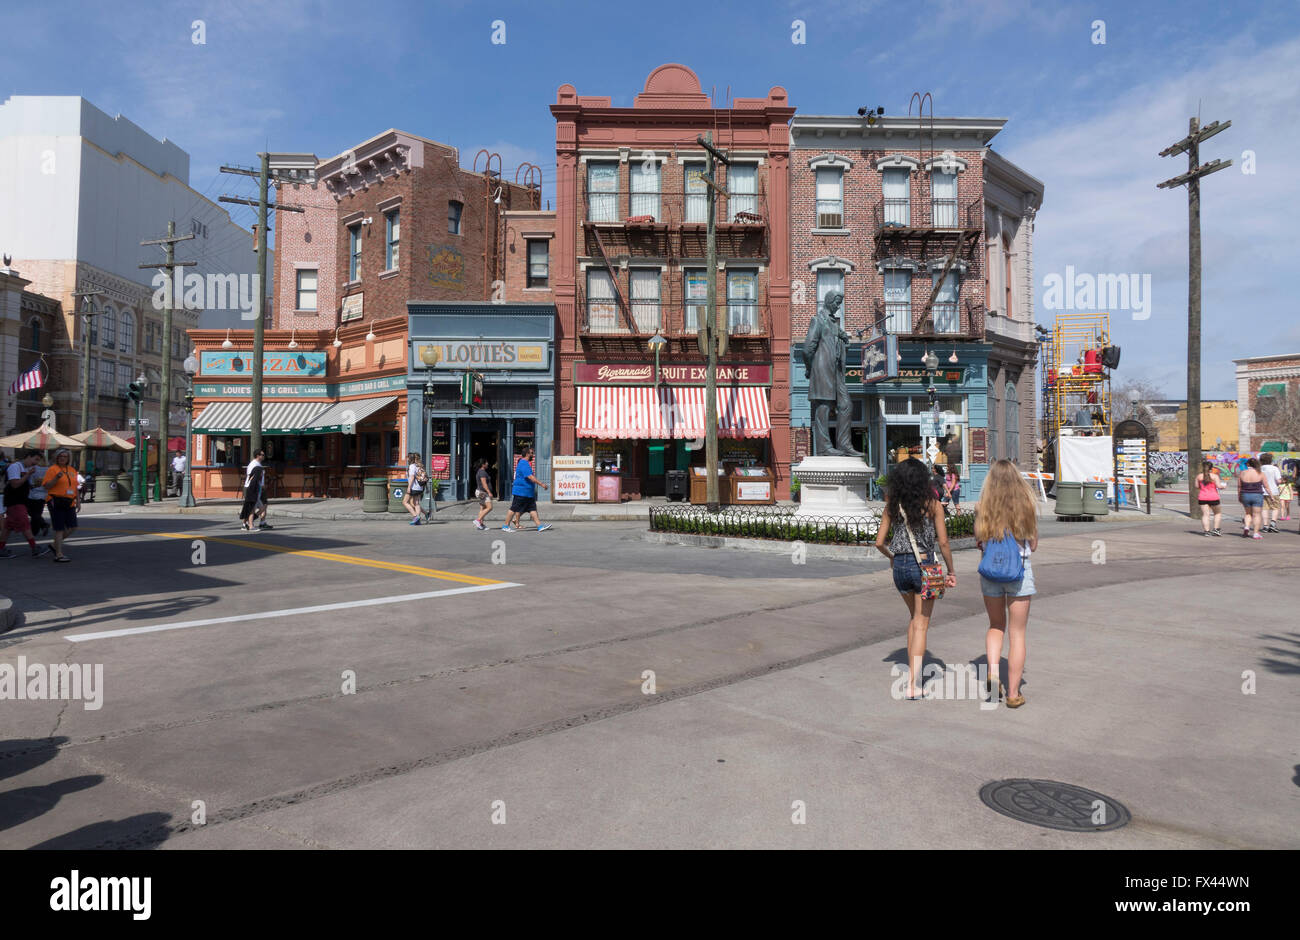 Little Italy Back Lot In The San Francisco Area Of Universal Studios Theme Park Orlando Florida Stock Photo